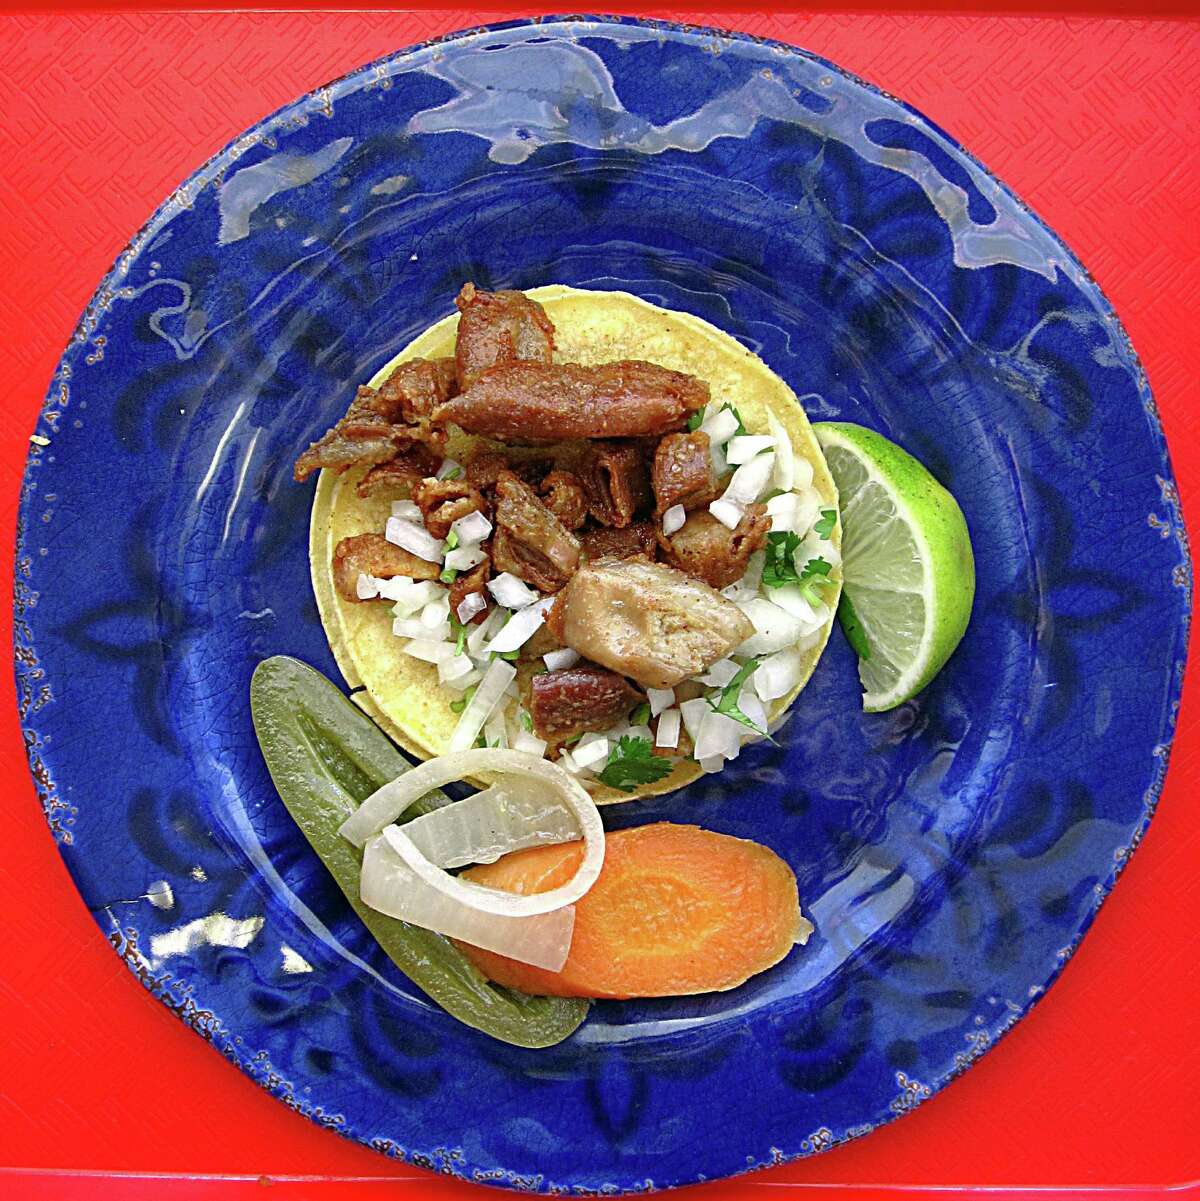 Tacos Y Burritos Metro Basilica 2: Crispy tripas7627 Culebra Road  Rating: Worth a drive At just $1.16 a shot, it's worth experimenting with every meat on the menu. But the best among them is tripas, those tubular bits of small intestine, cooked as crispy as Cheetos wrapped in steak fat on mini corn tortillas.